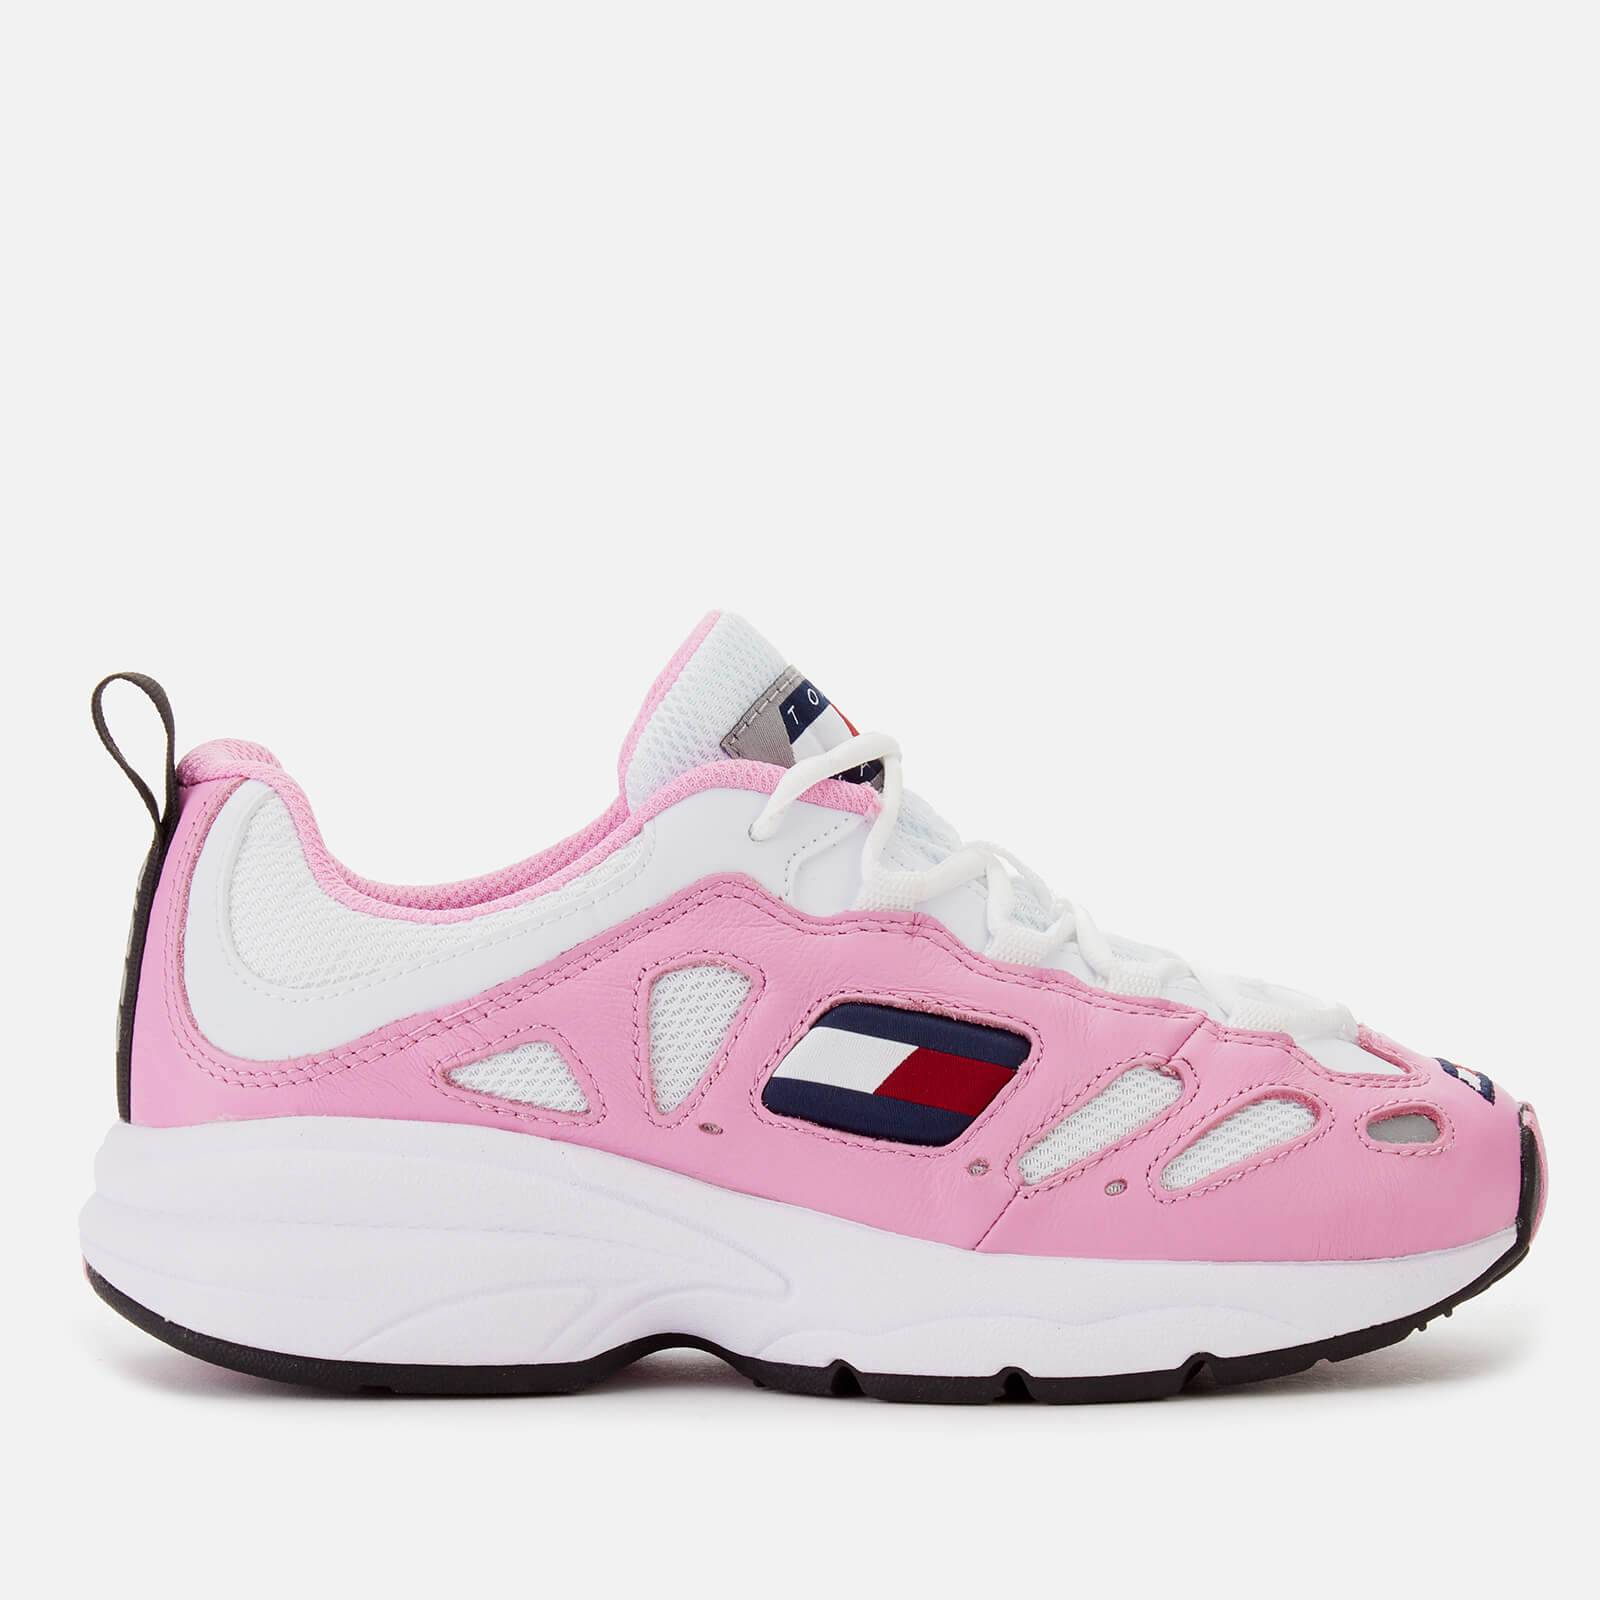 Tommy Jeans Women's Retro Chunky Runner Style Trainers - Pink Mist/White - EU 39/UK 6 - Pink